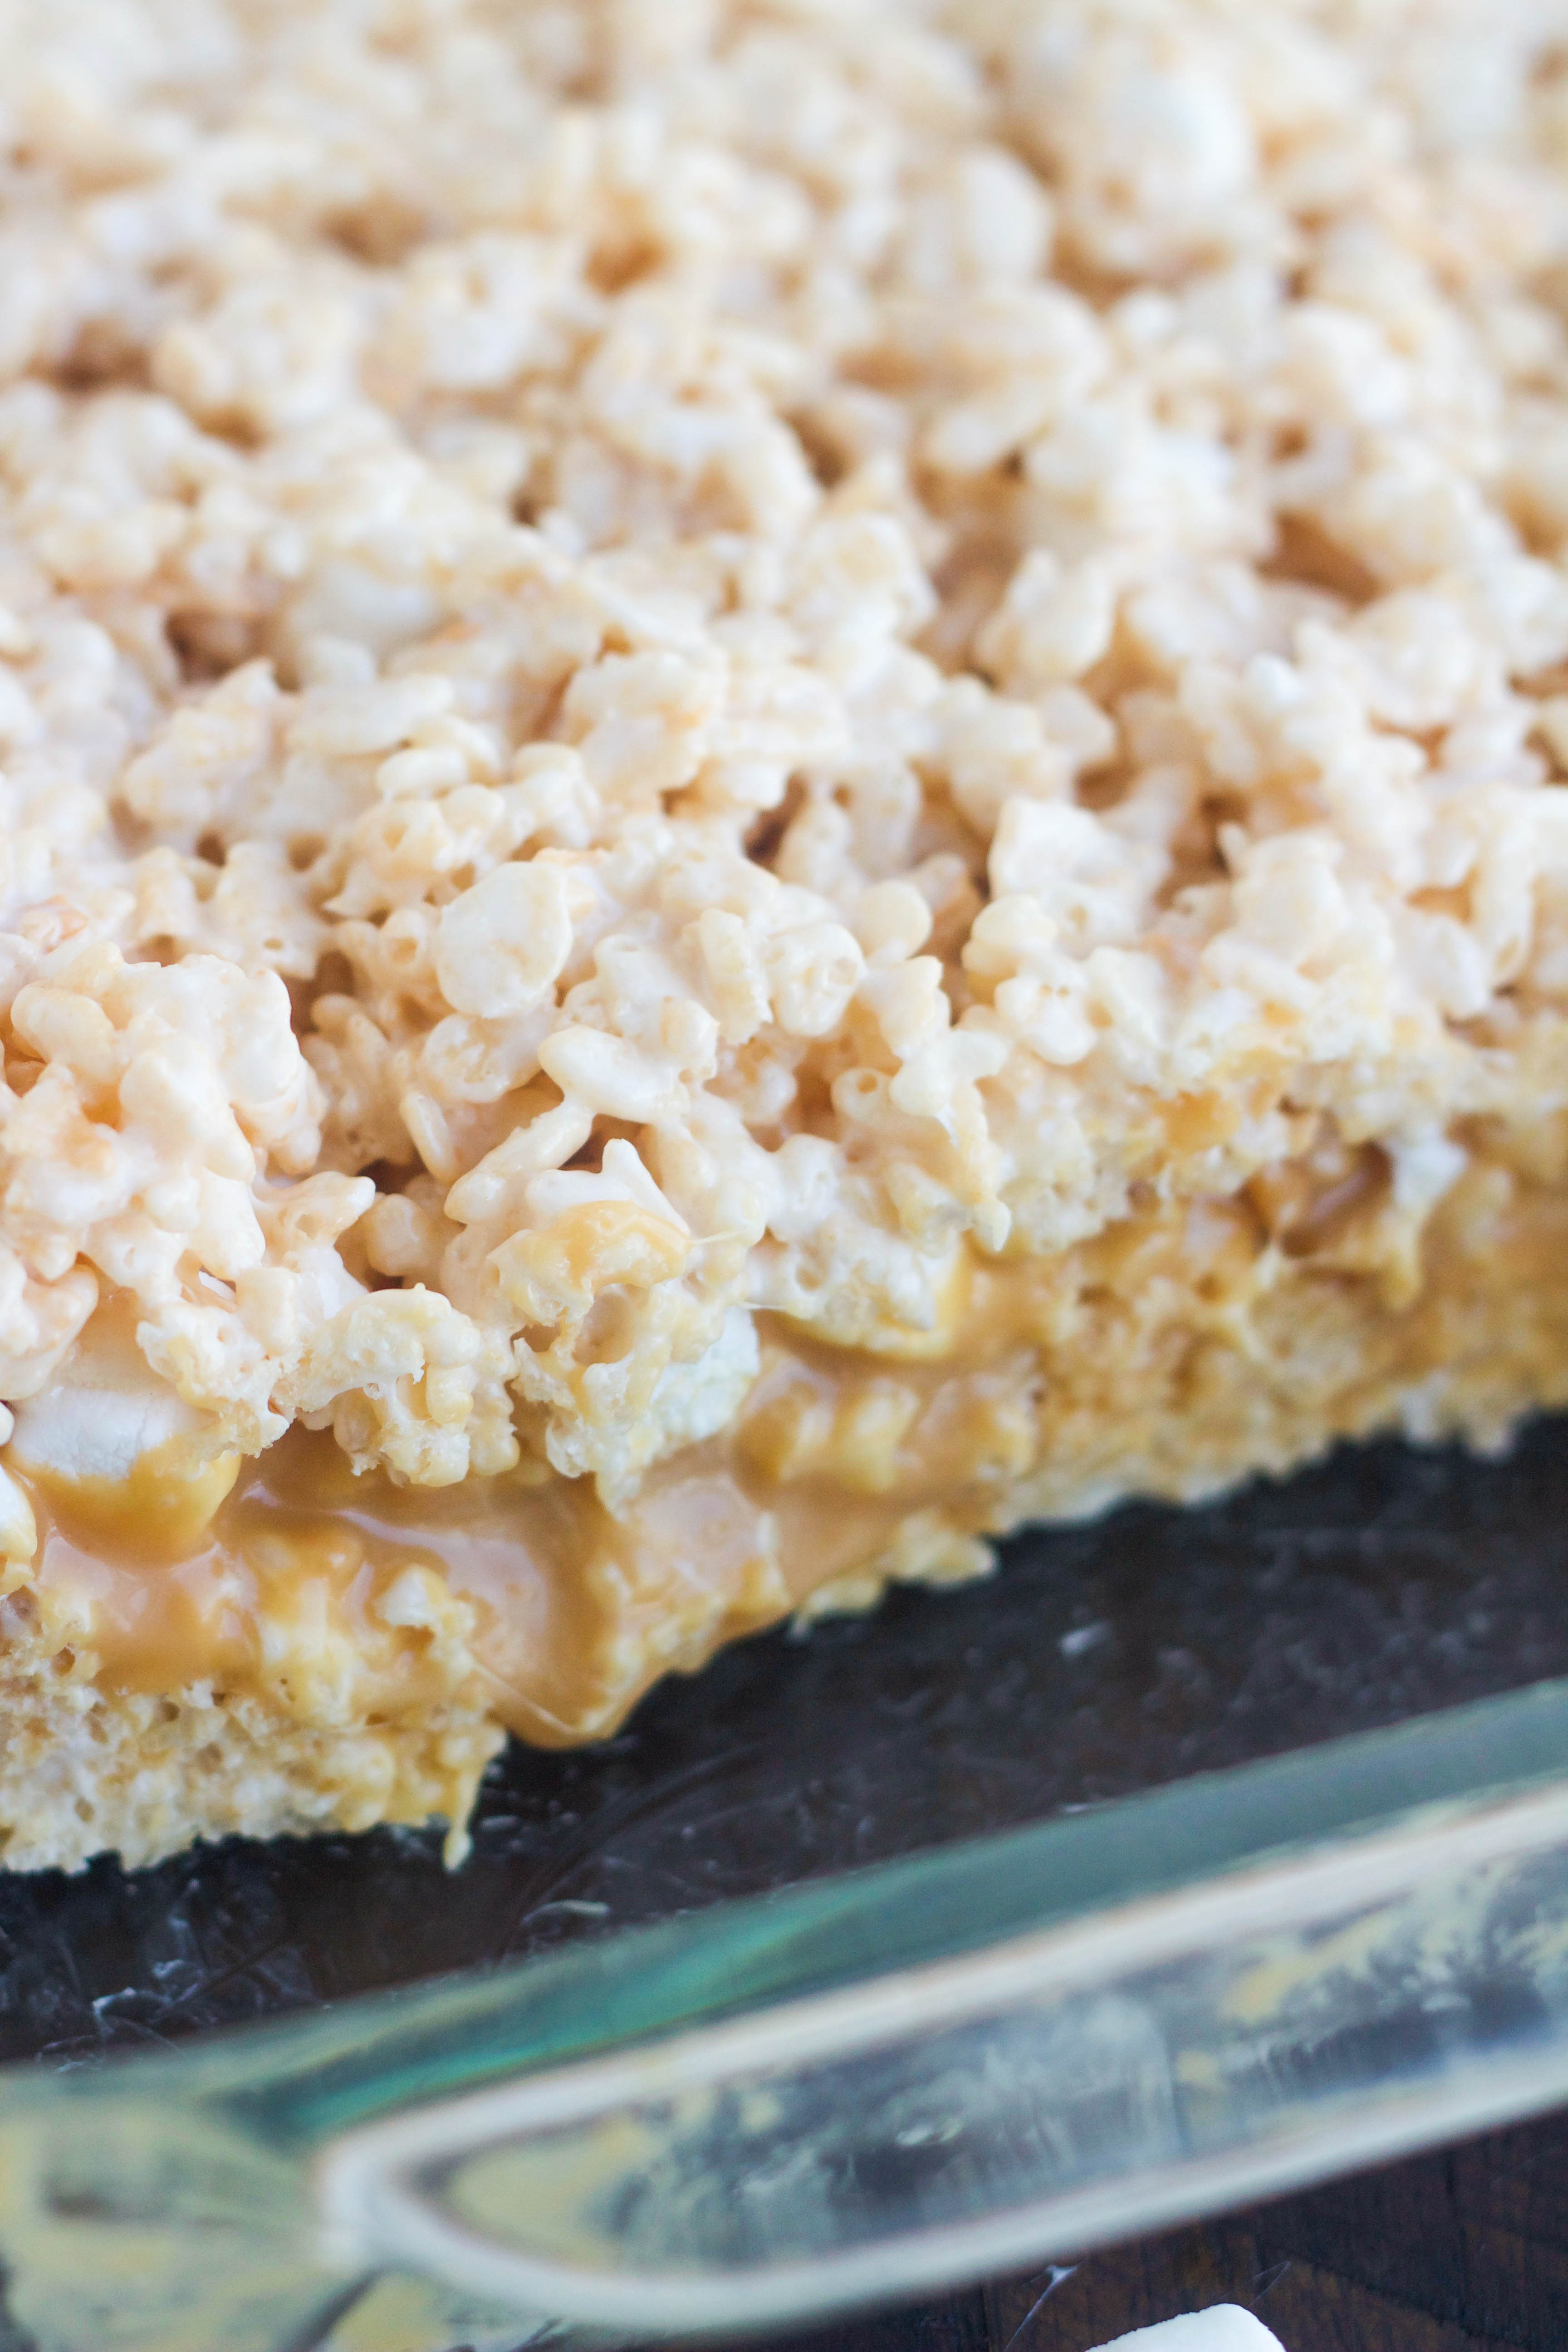 A pan of caramel stuffed Rice Krispie treats in